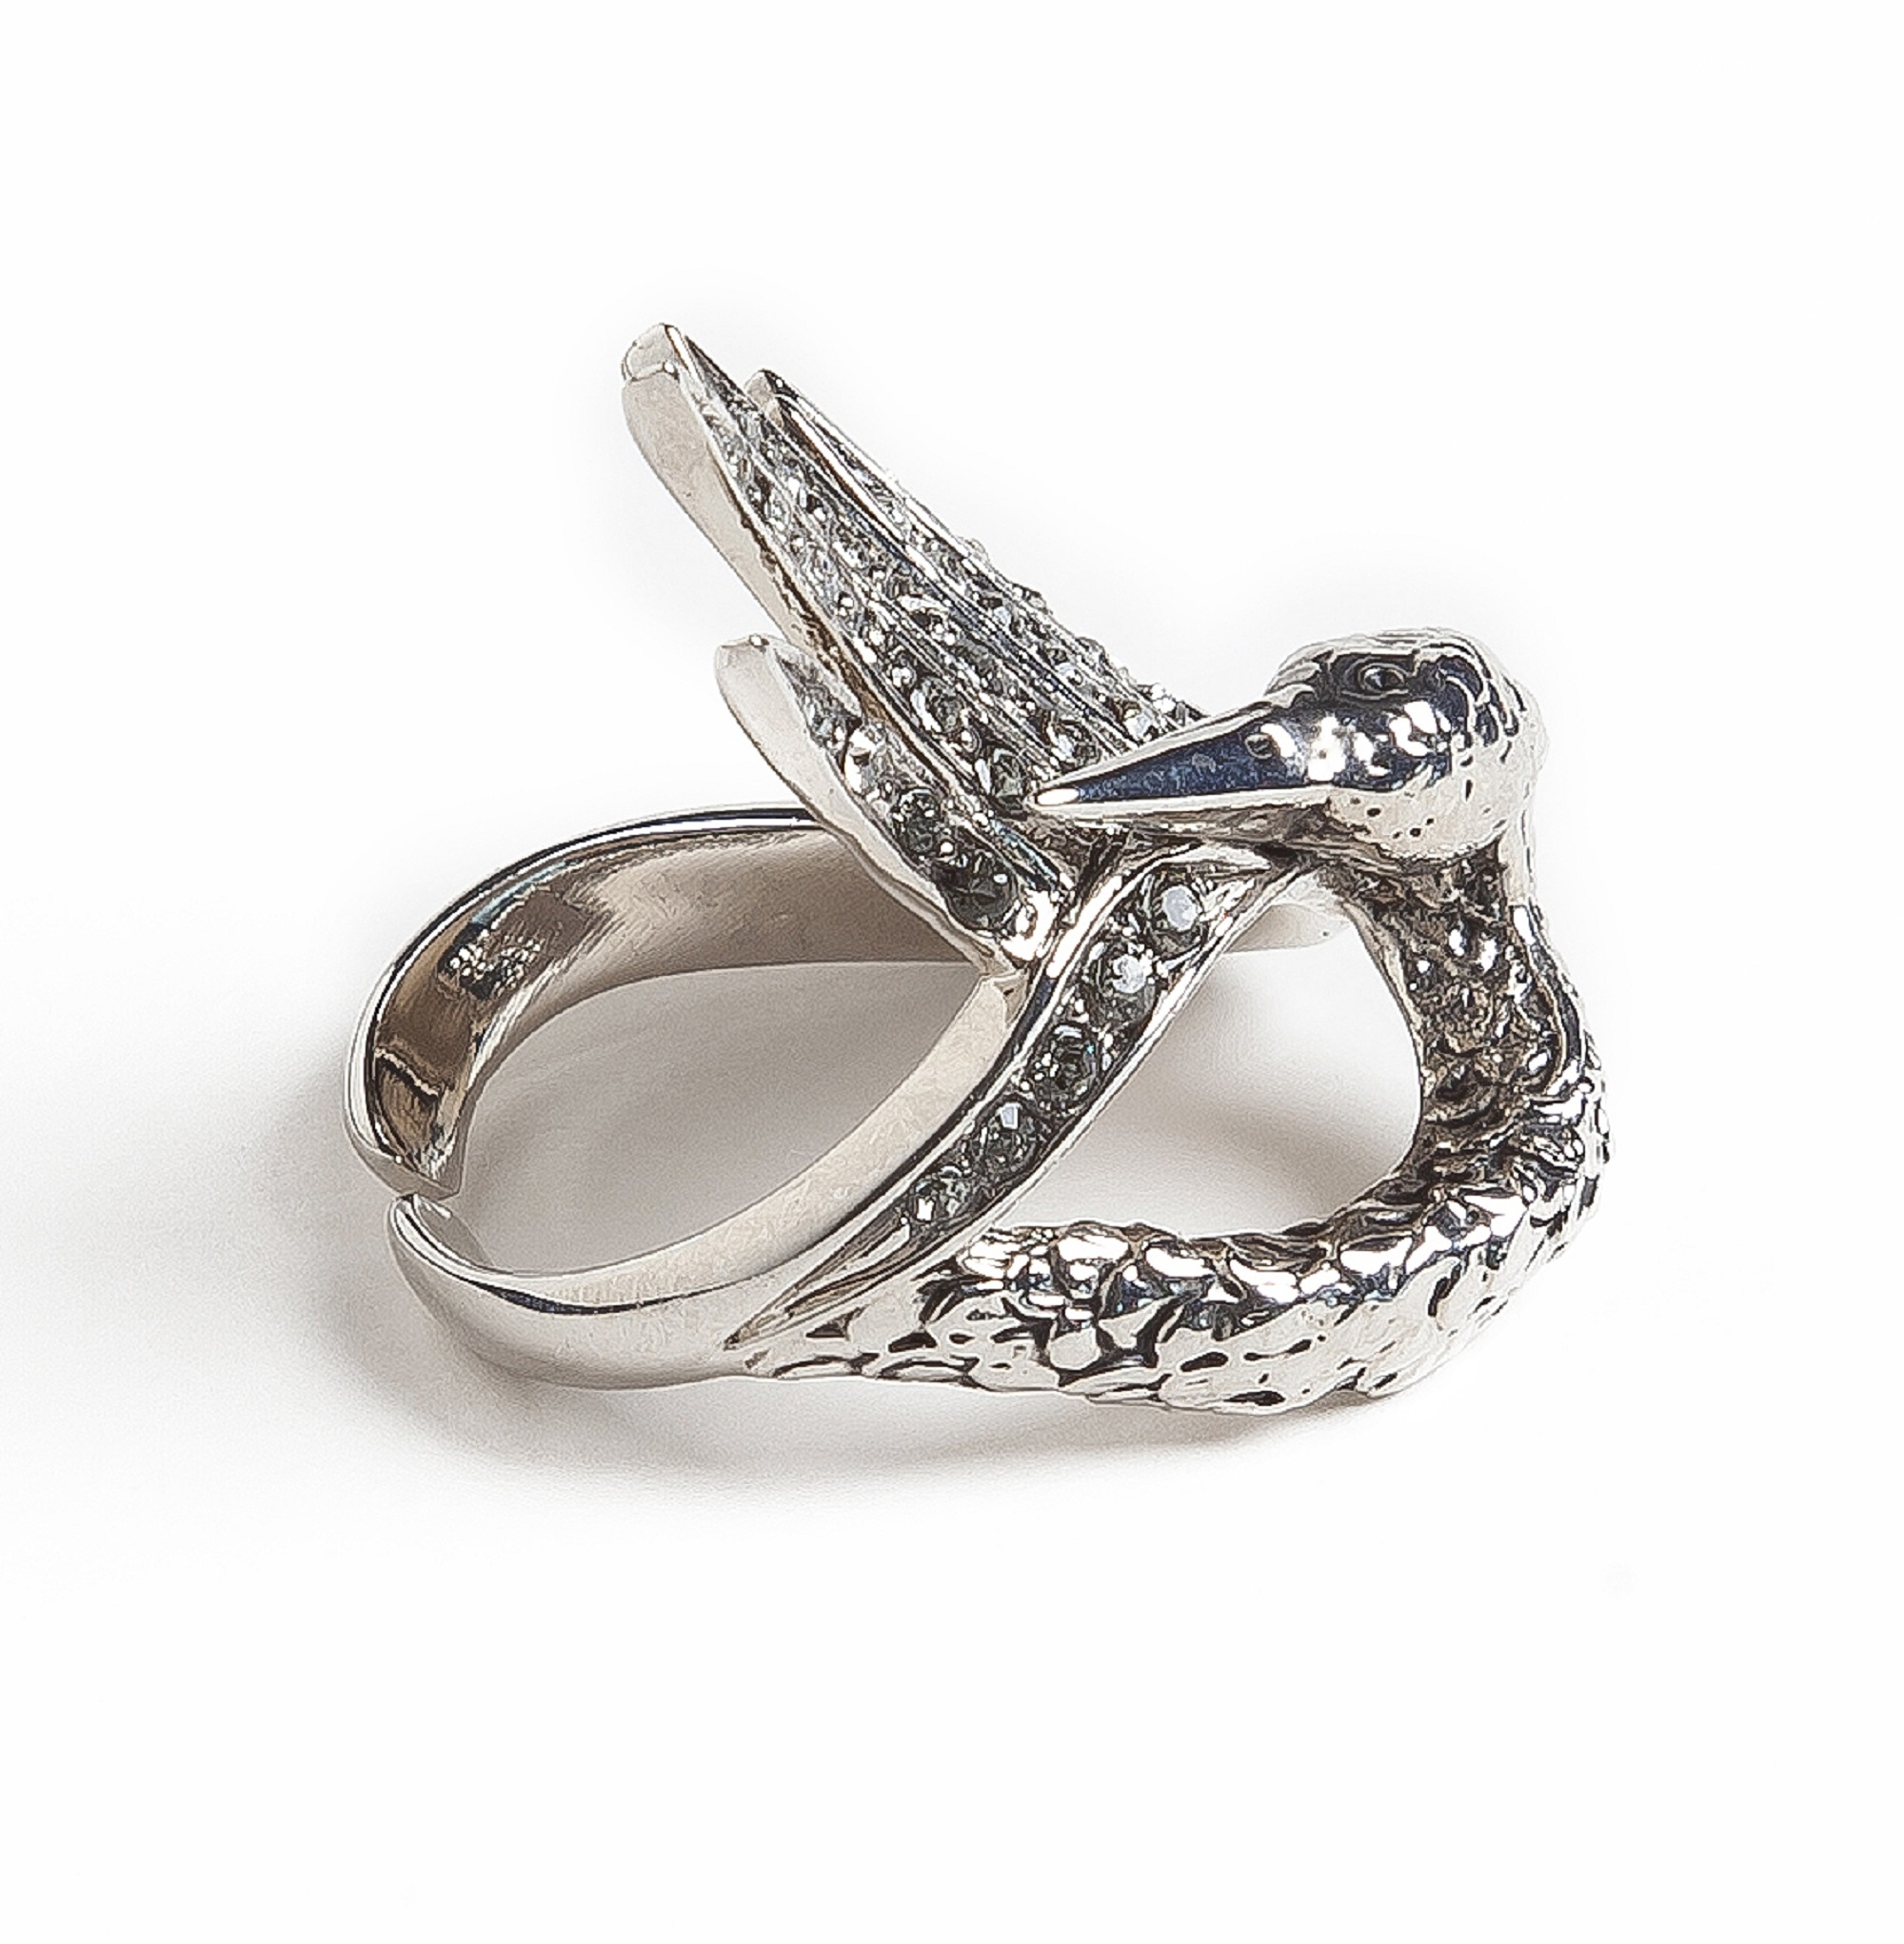 Silver Swan Luxury Ring by Sonia Petroff on curated-crowd.com